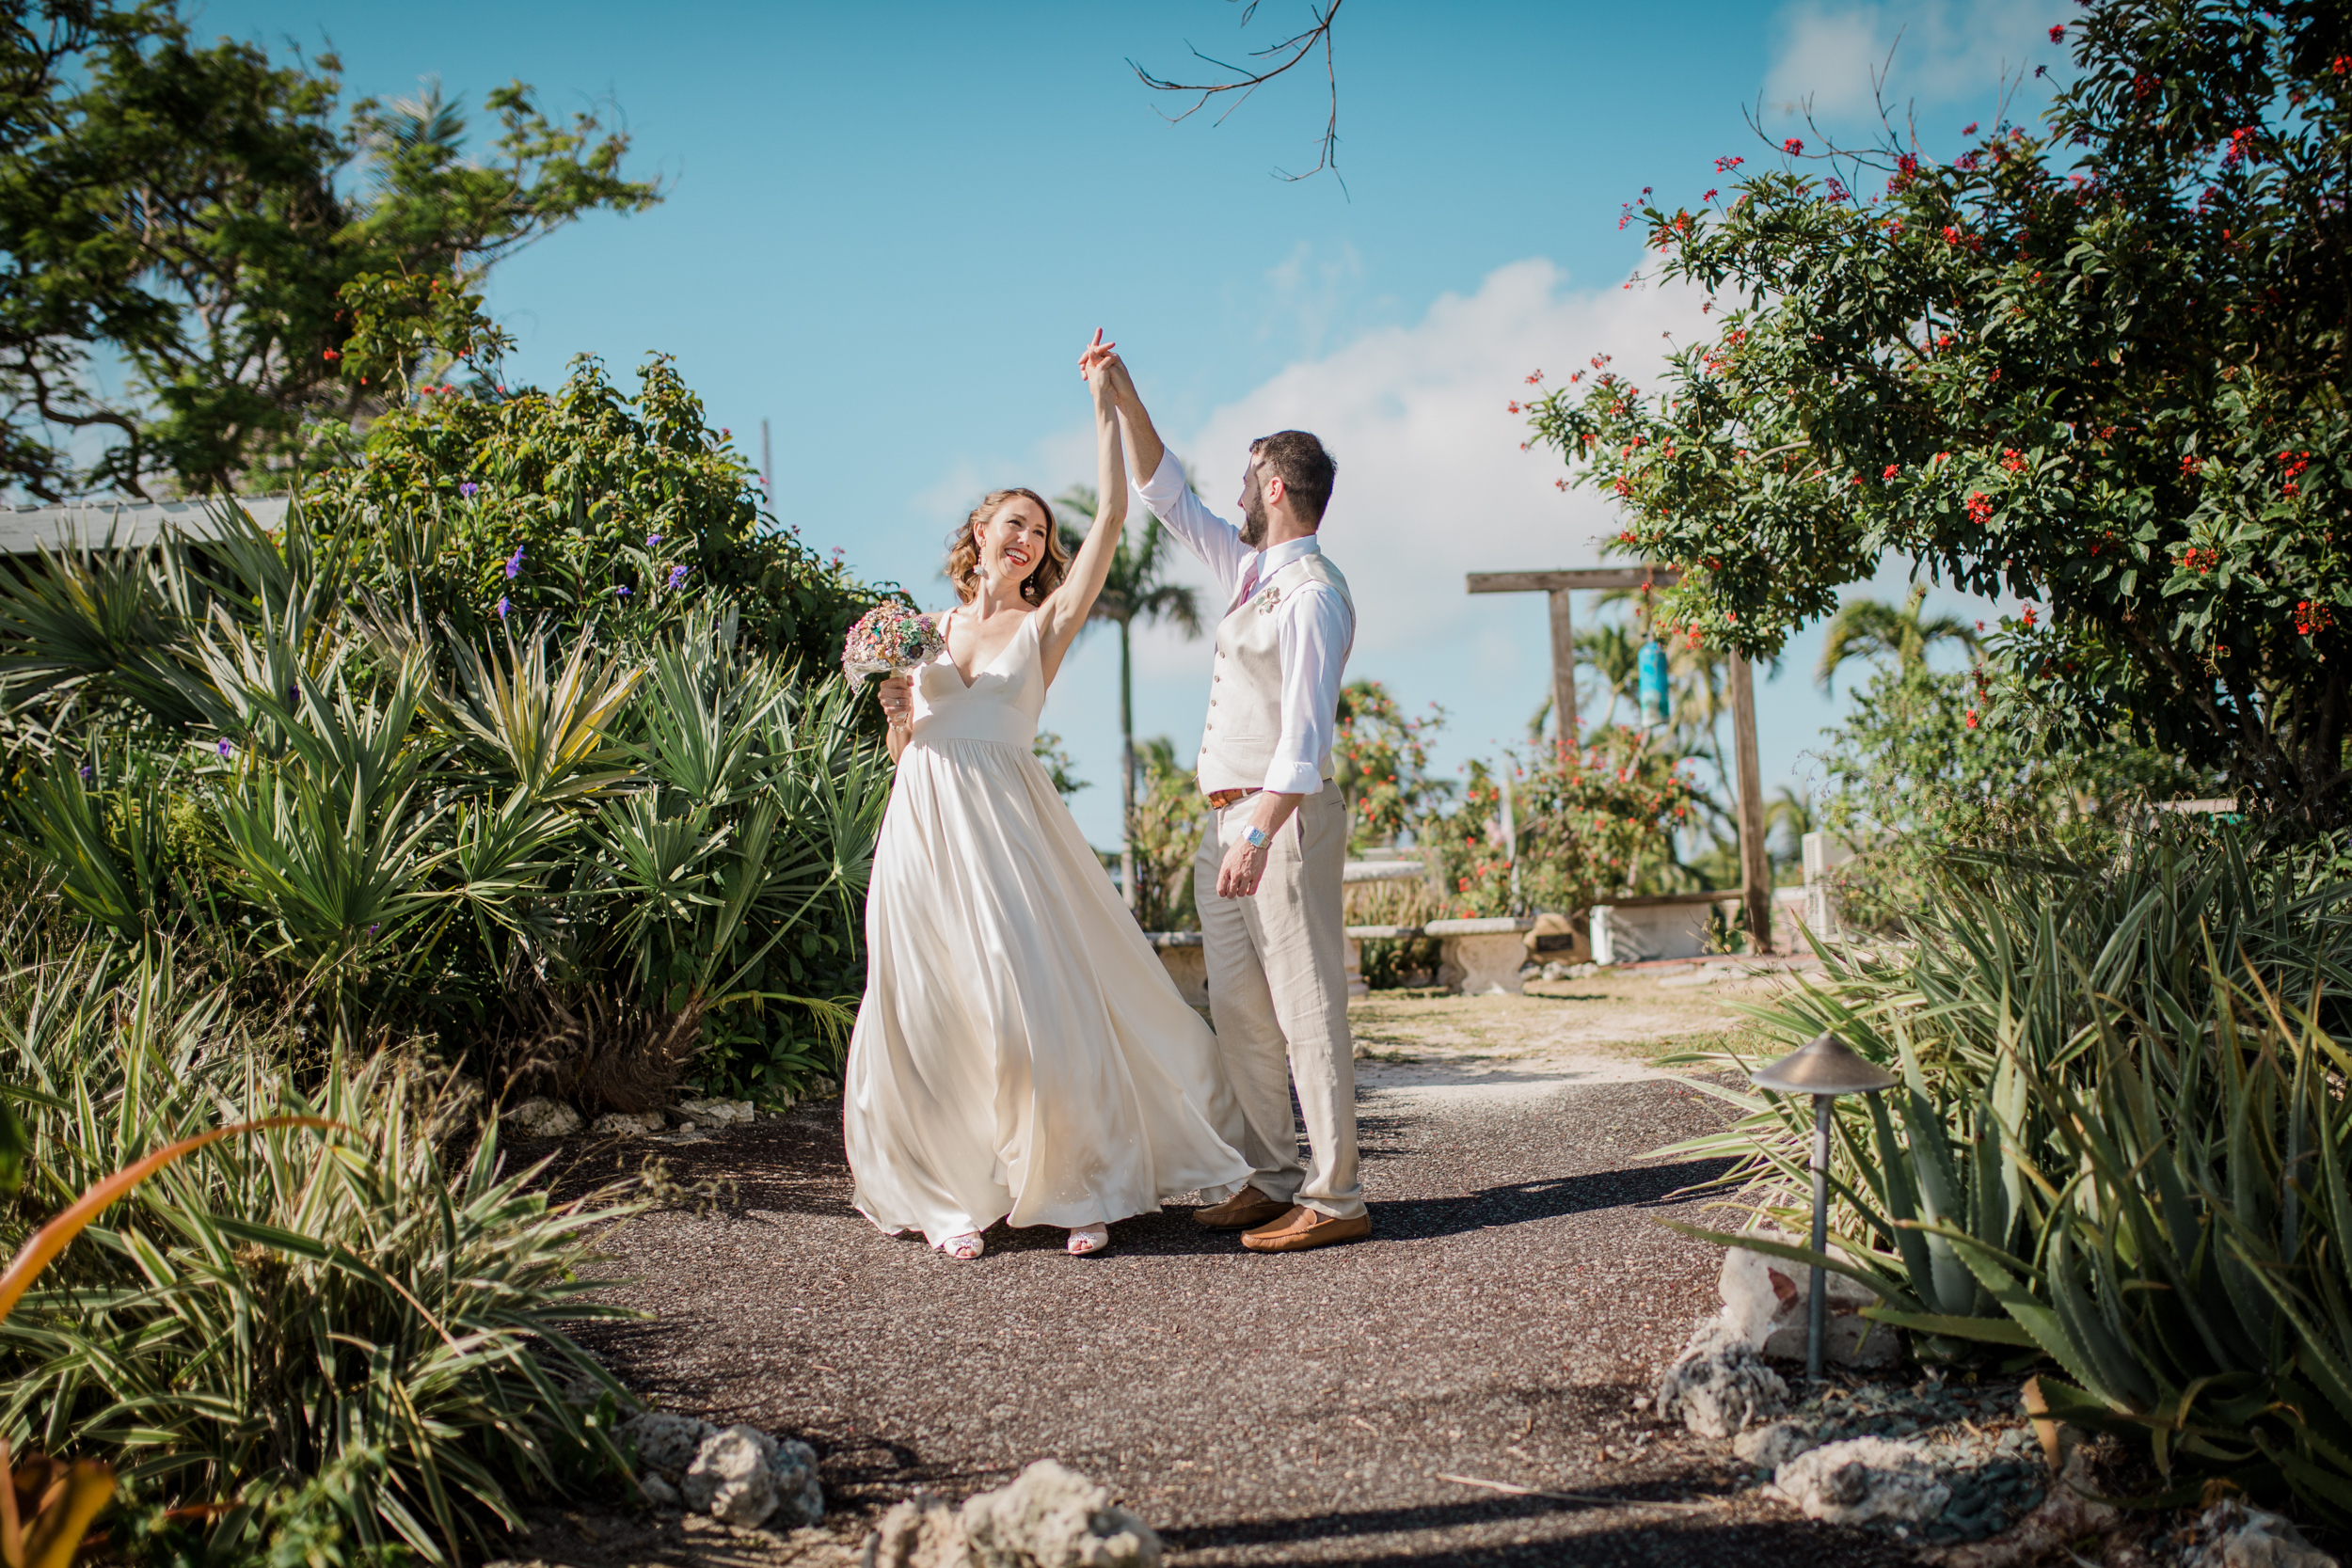 lena perkins key west wedding photographer, key west wedding, west martello